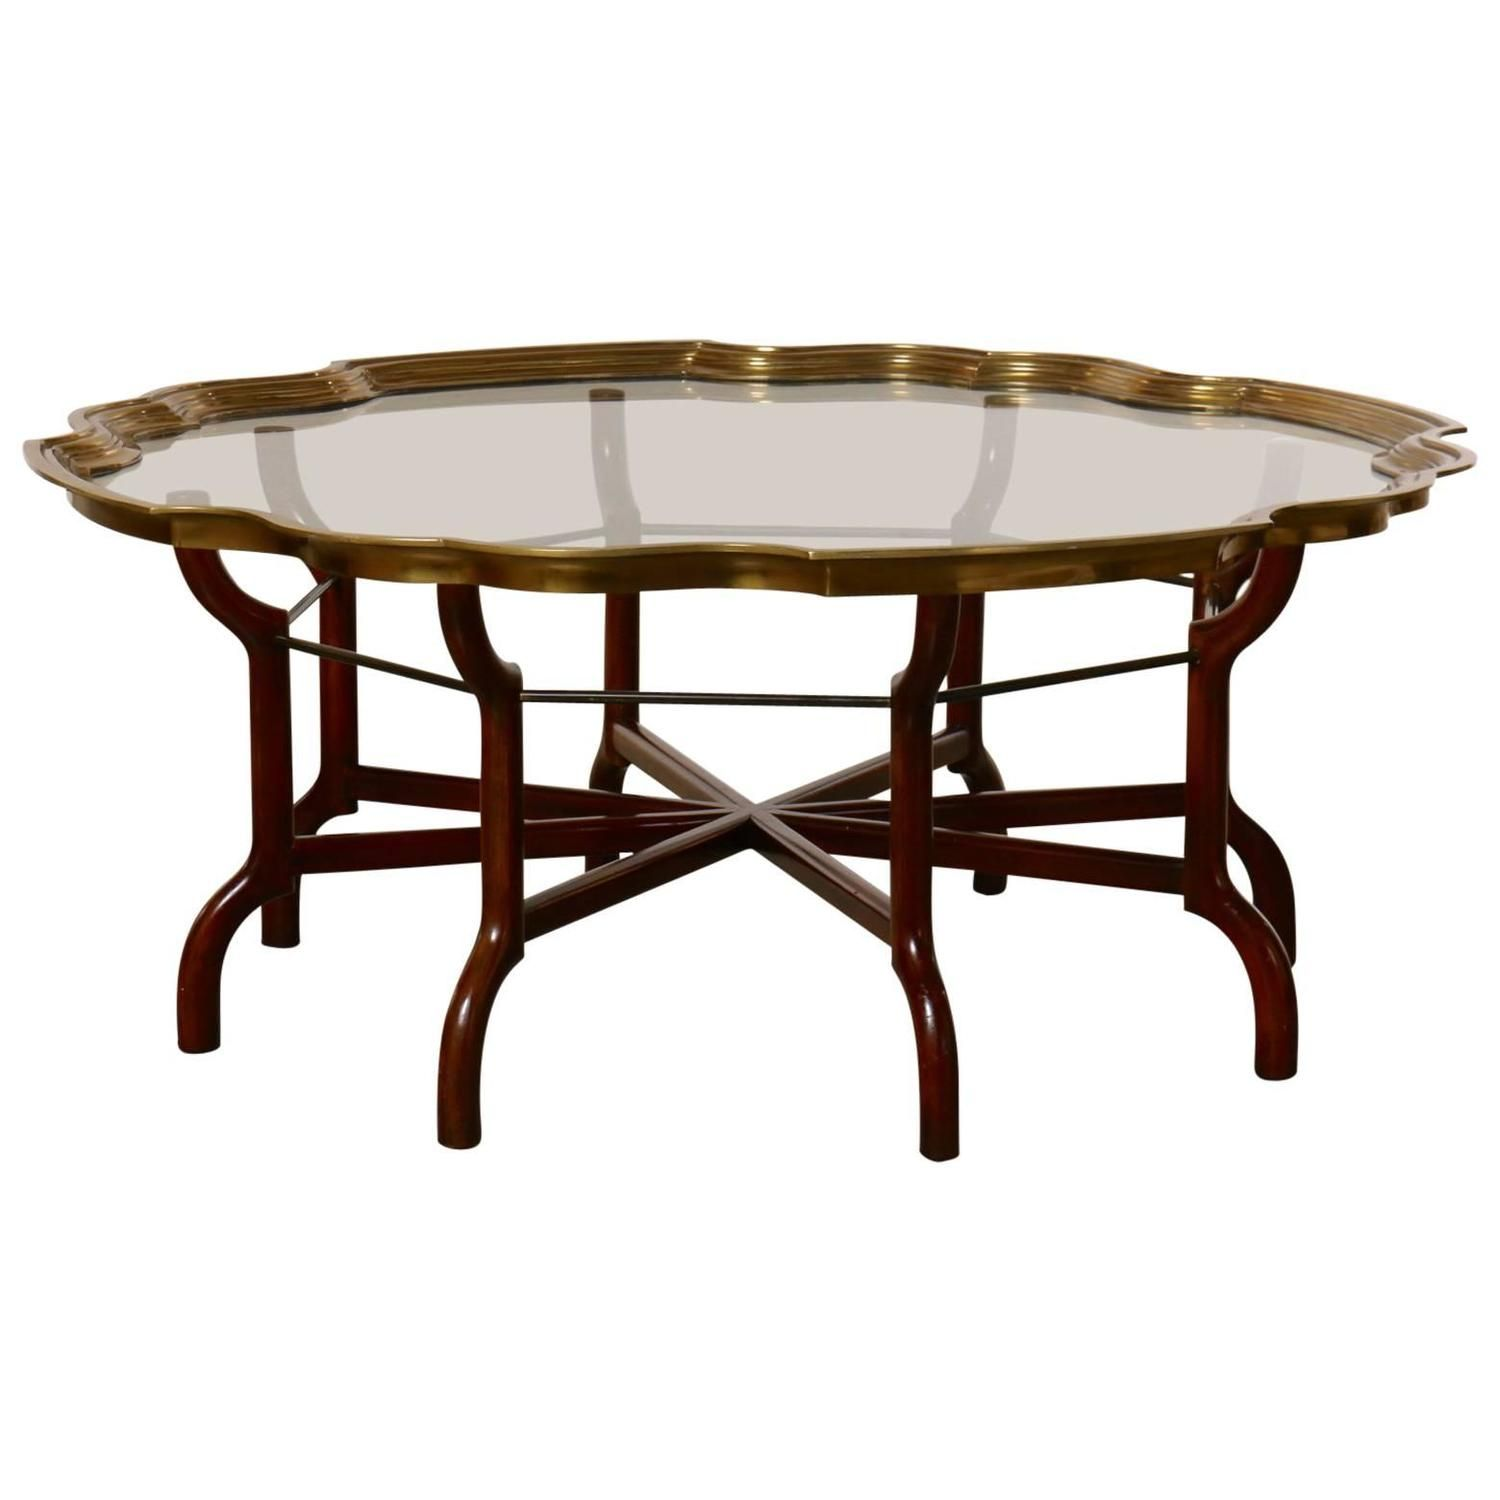 Best Baker Brass And Glass Round Tray Top Coffee Table For Sale 400 x 300